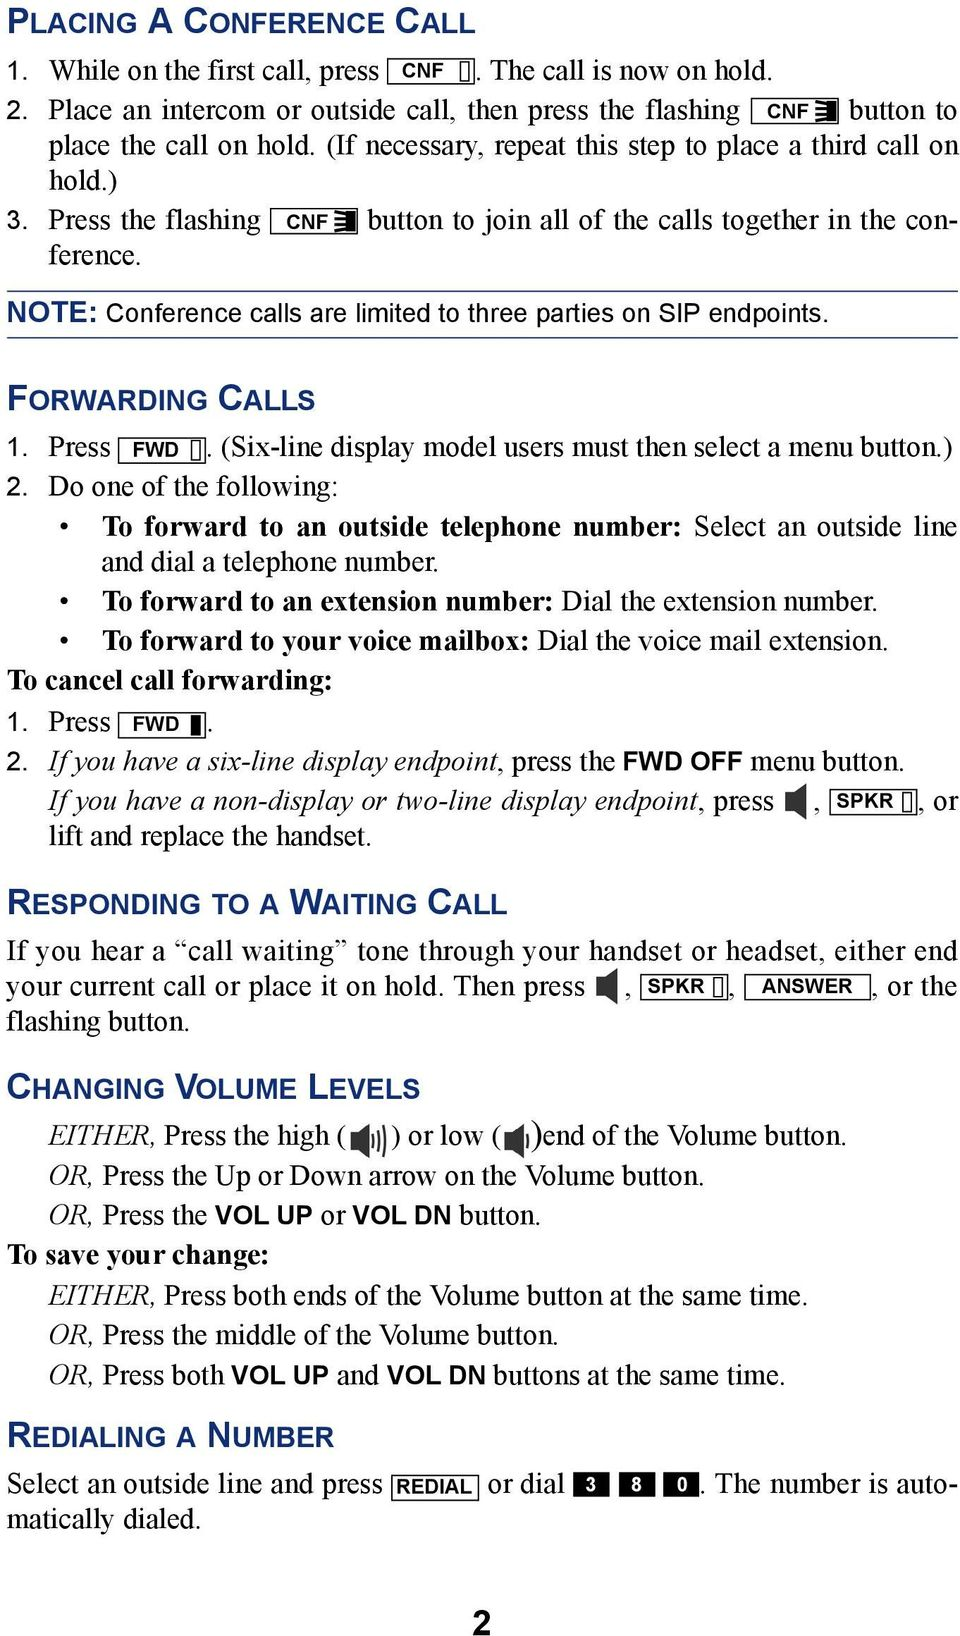 NOTE: Conference calls are limited to three parties on SIP endpoints. FORWARDING CALLS 1. Press FWD. (Six-line display model users must then select a menu button.) 2.